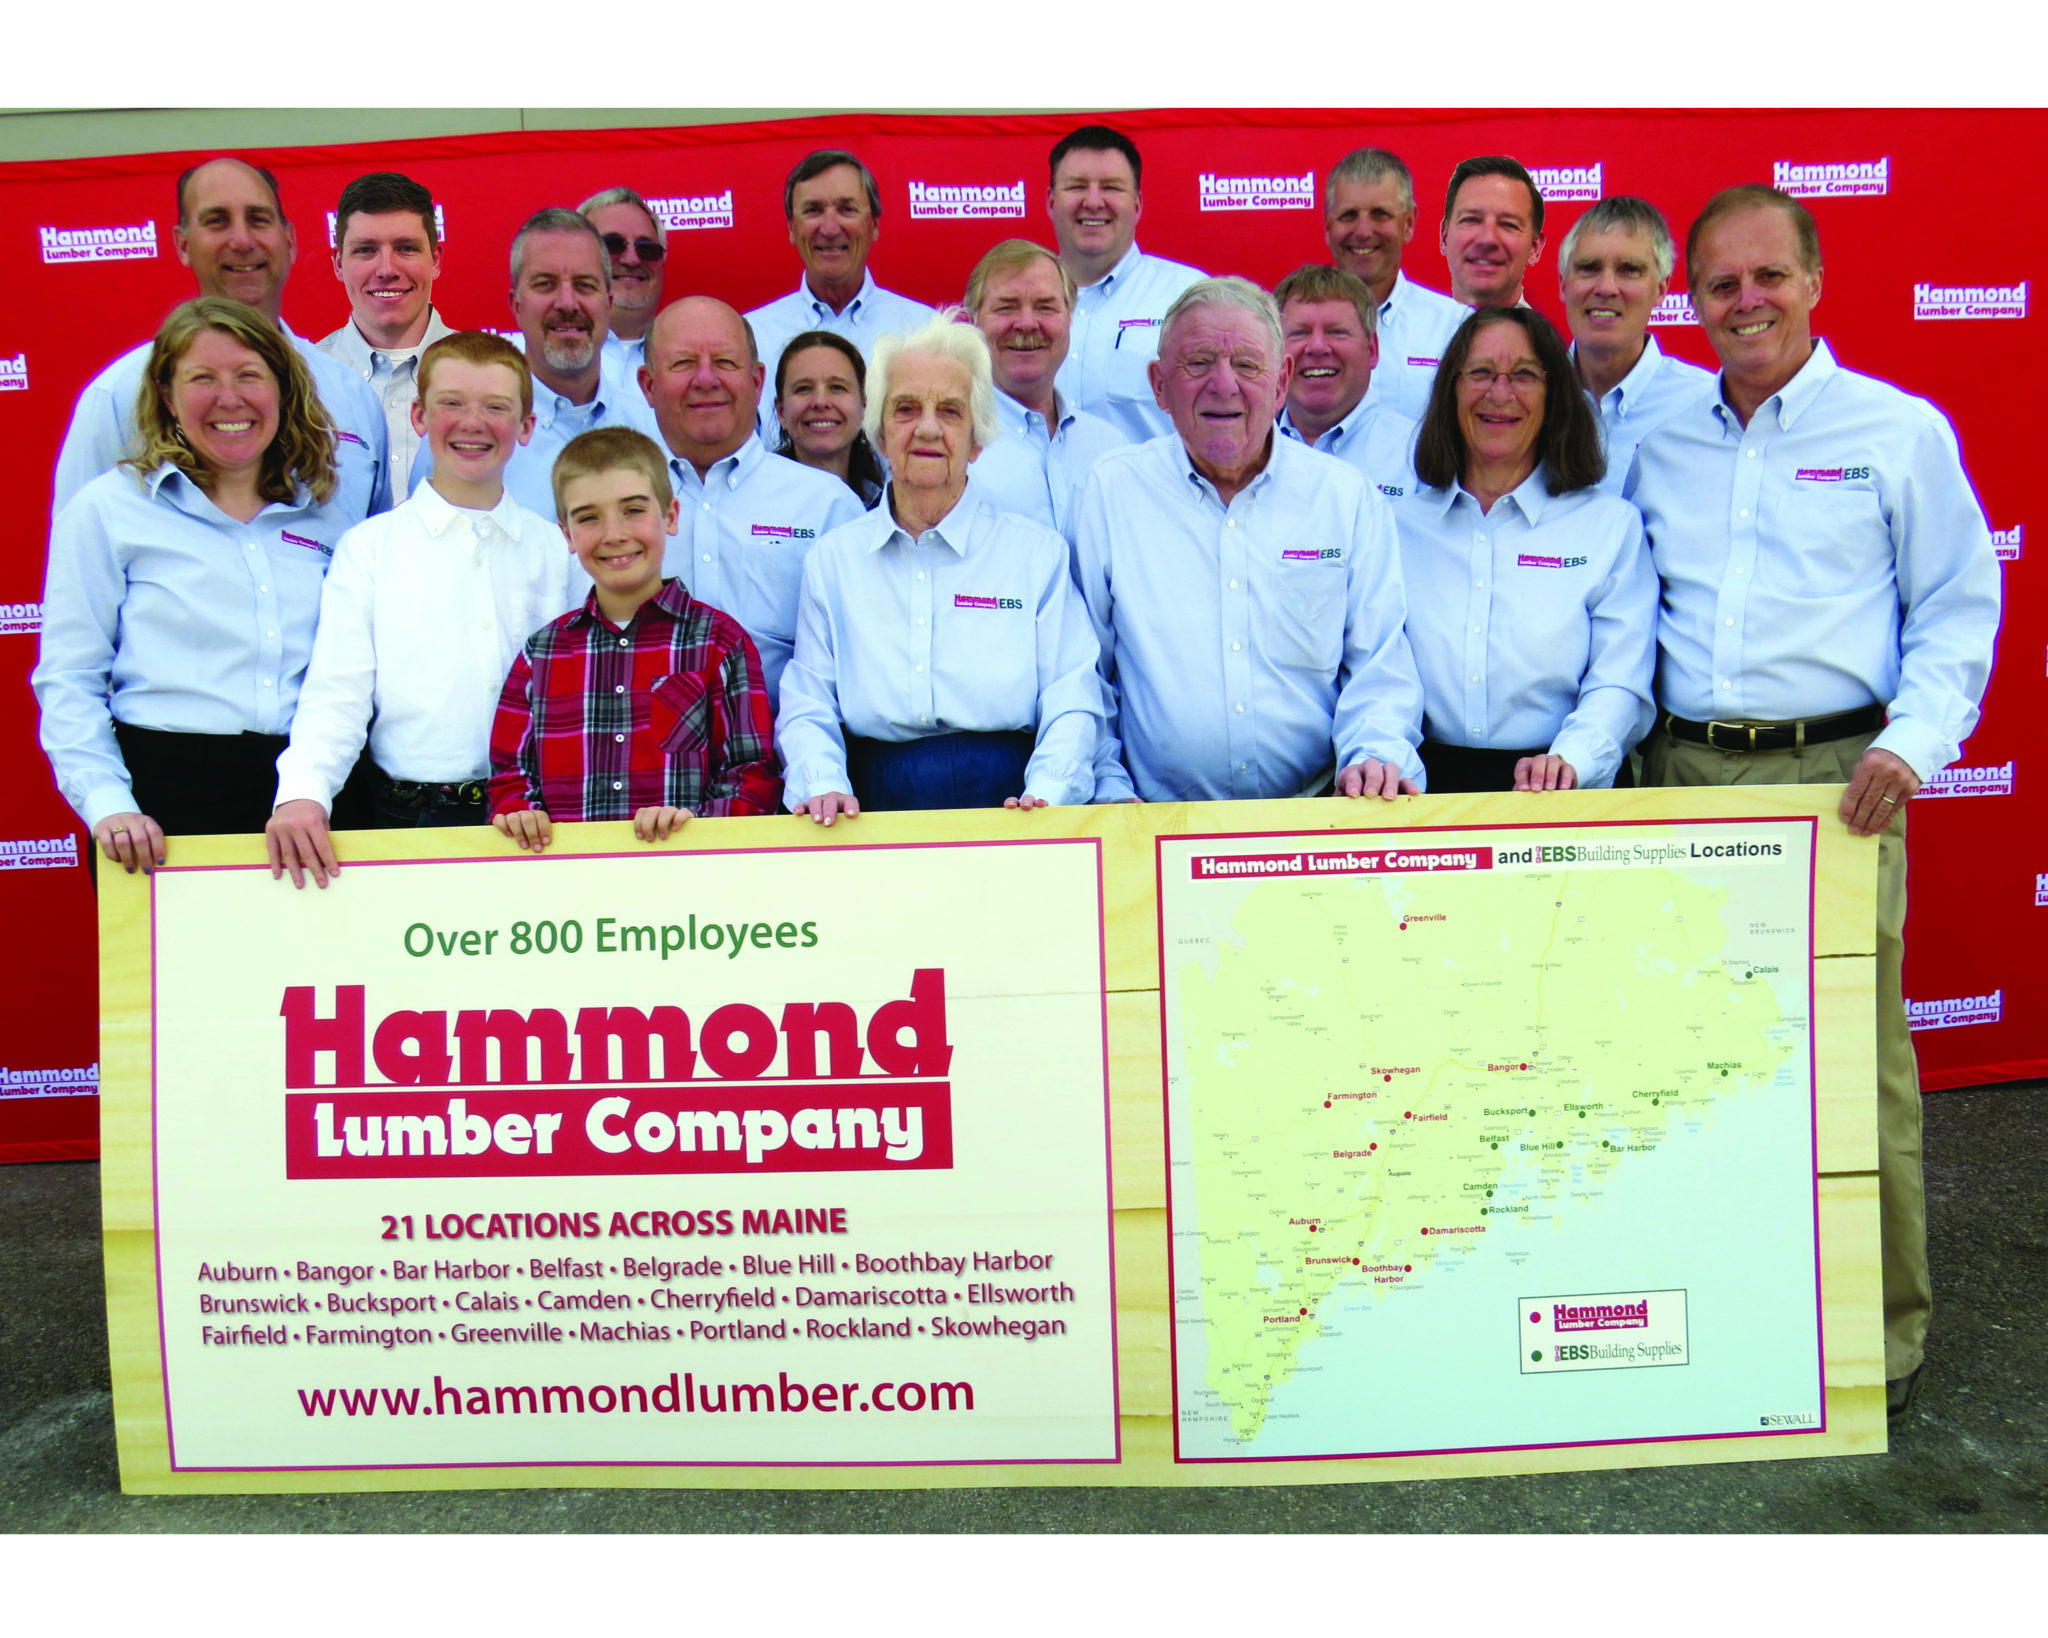 Hammond Lumber EBS Building Supplies Maine